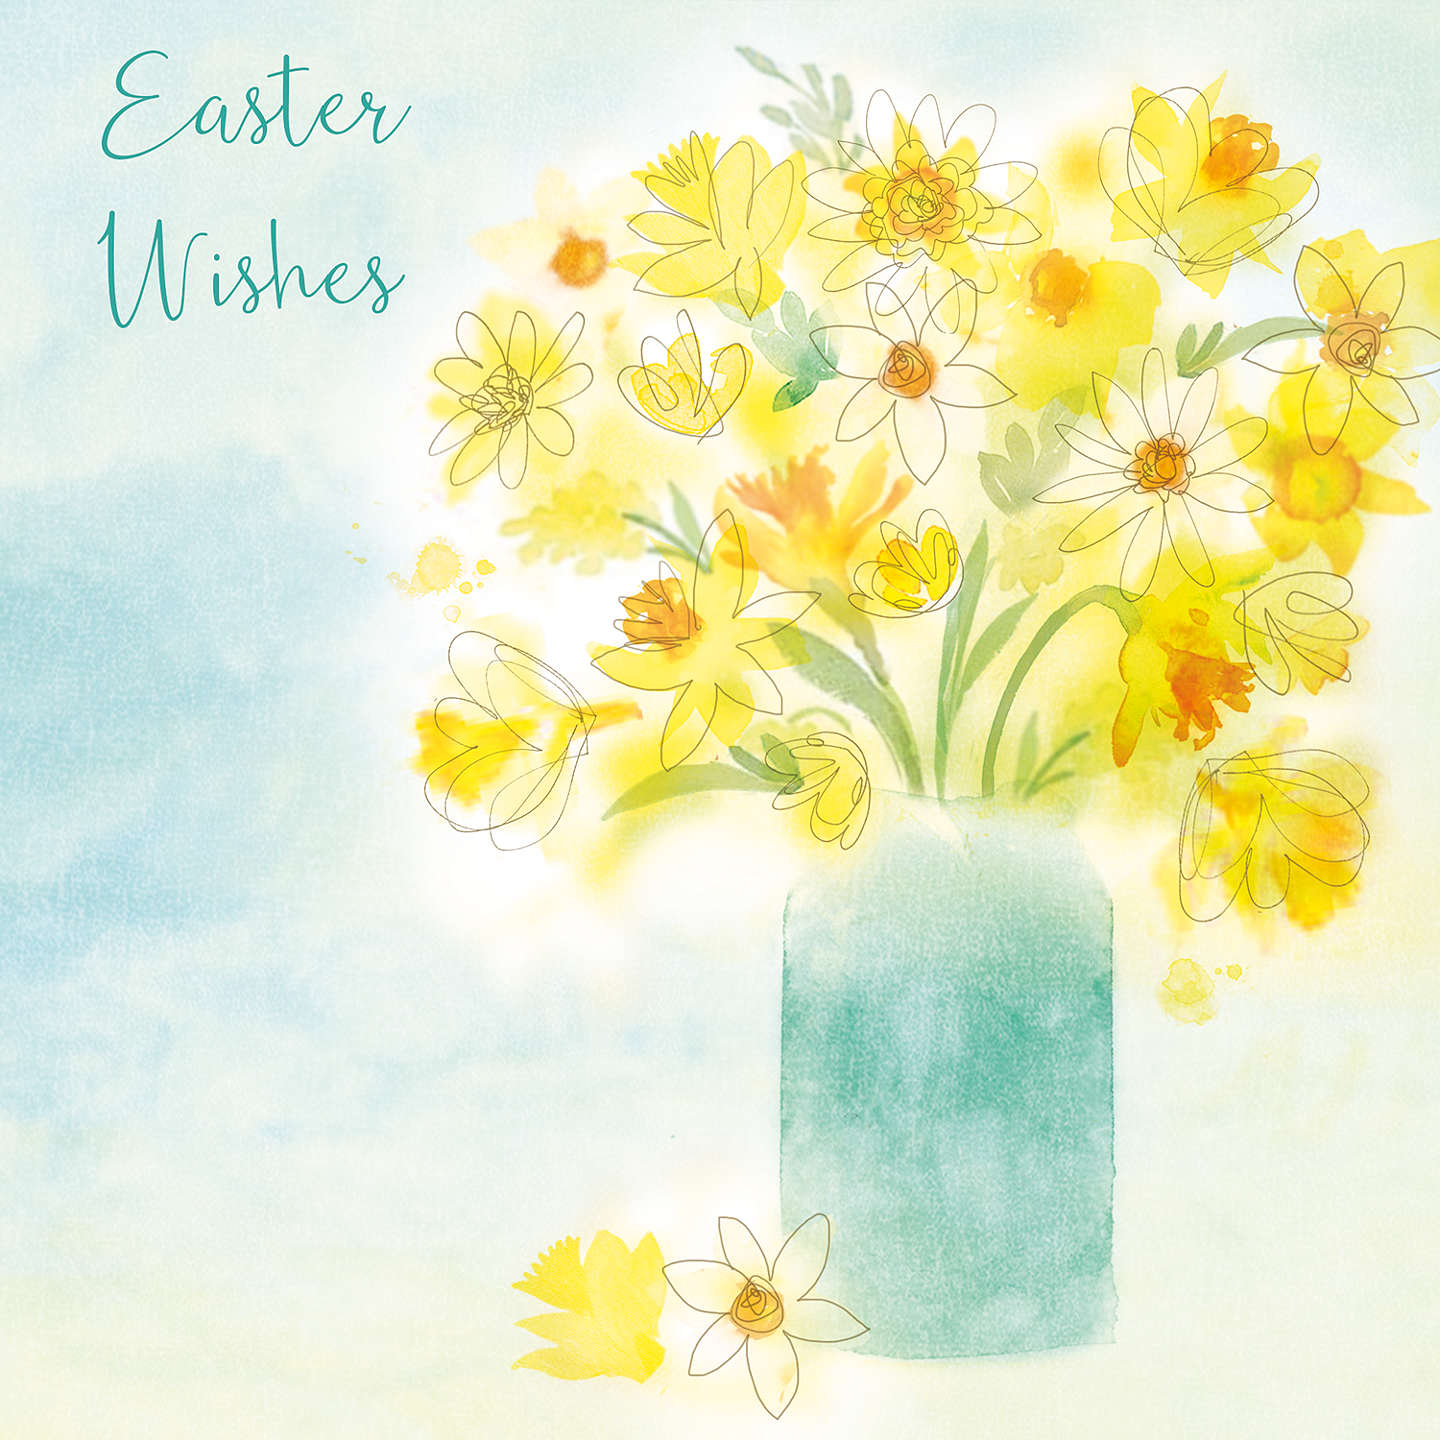 Saffron cards and gifts daffodils in vase easter greeting card at buysaffron cards and gifts daffodils in vase easter greeting card online at johnlewis negle Choice Image